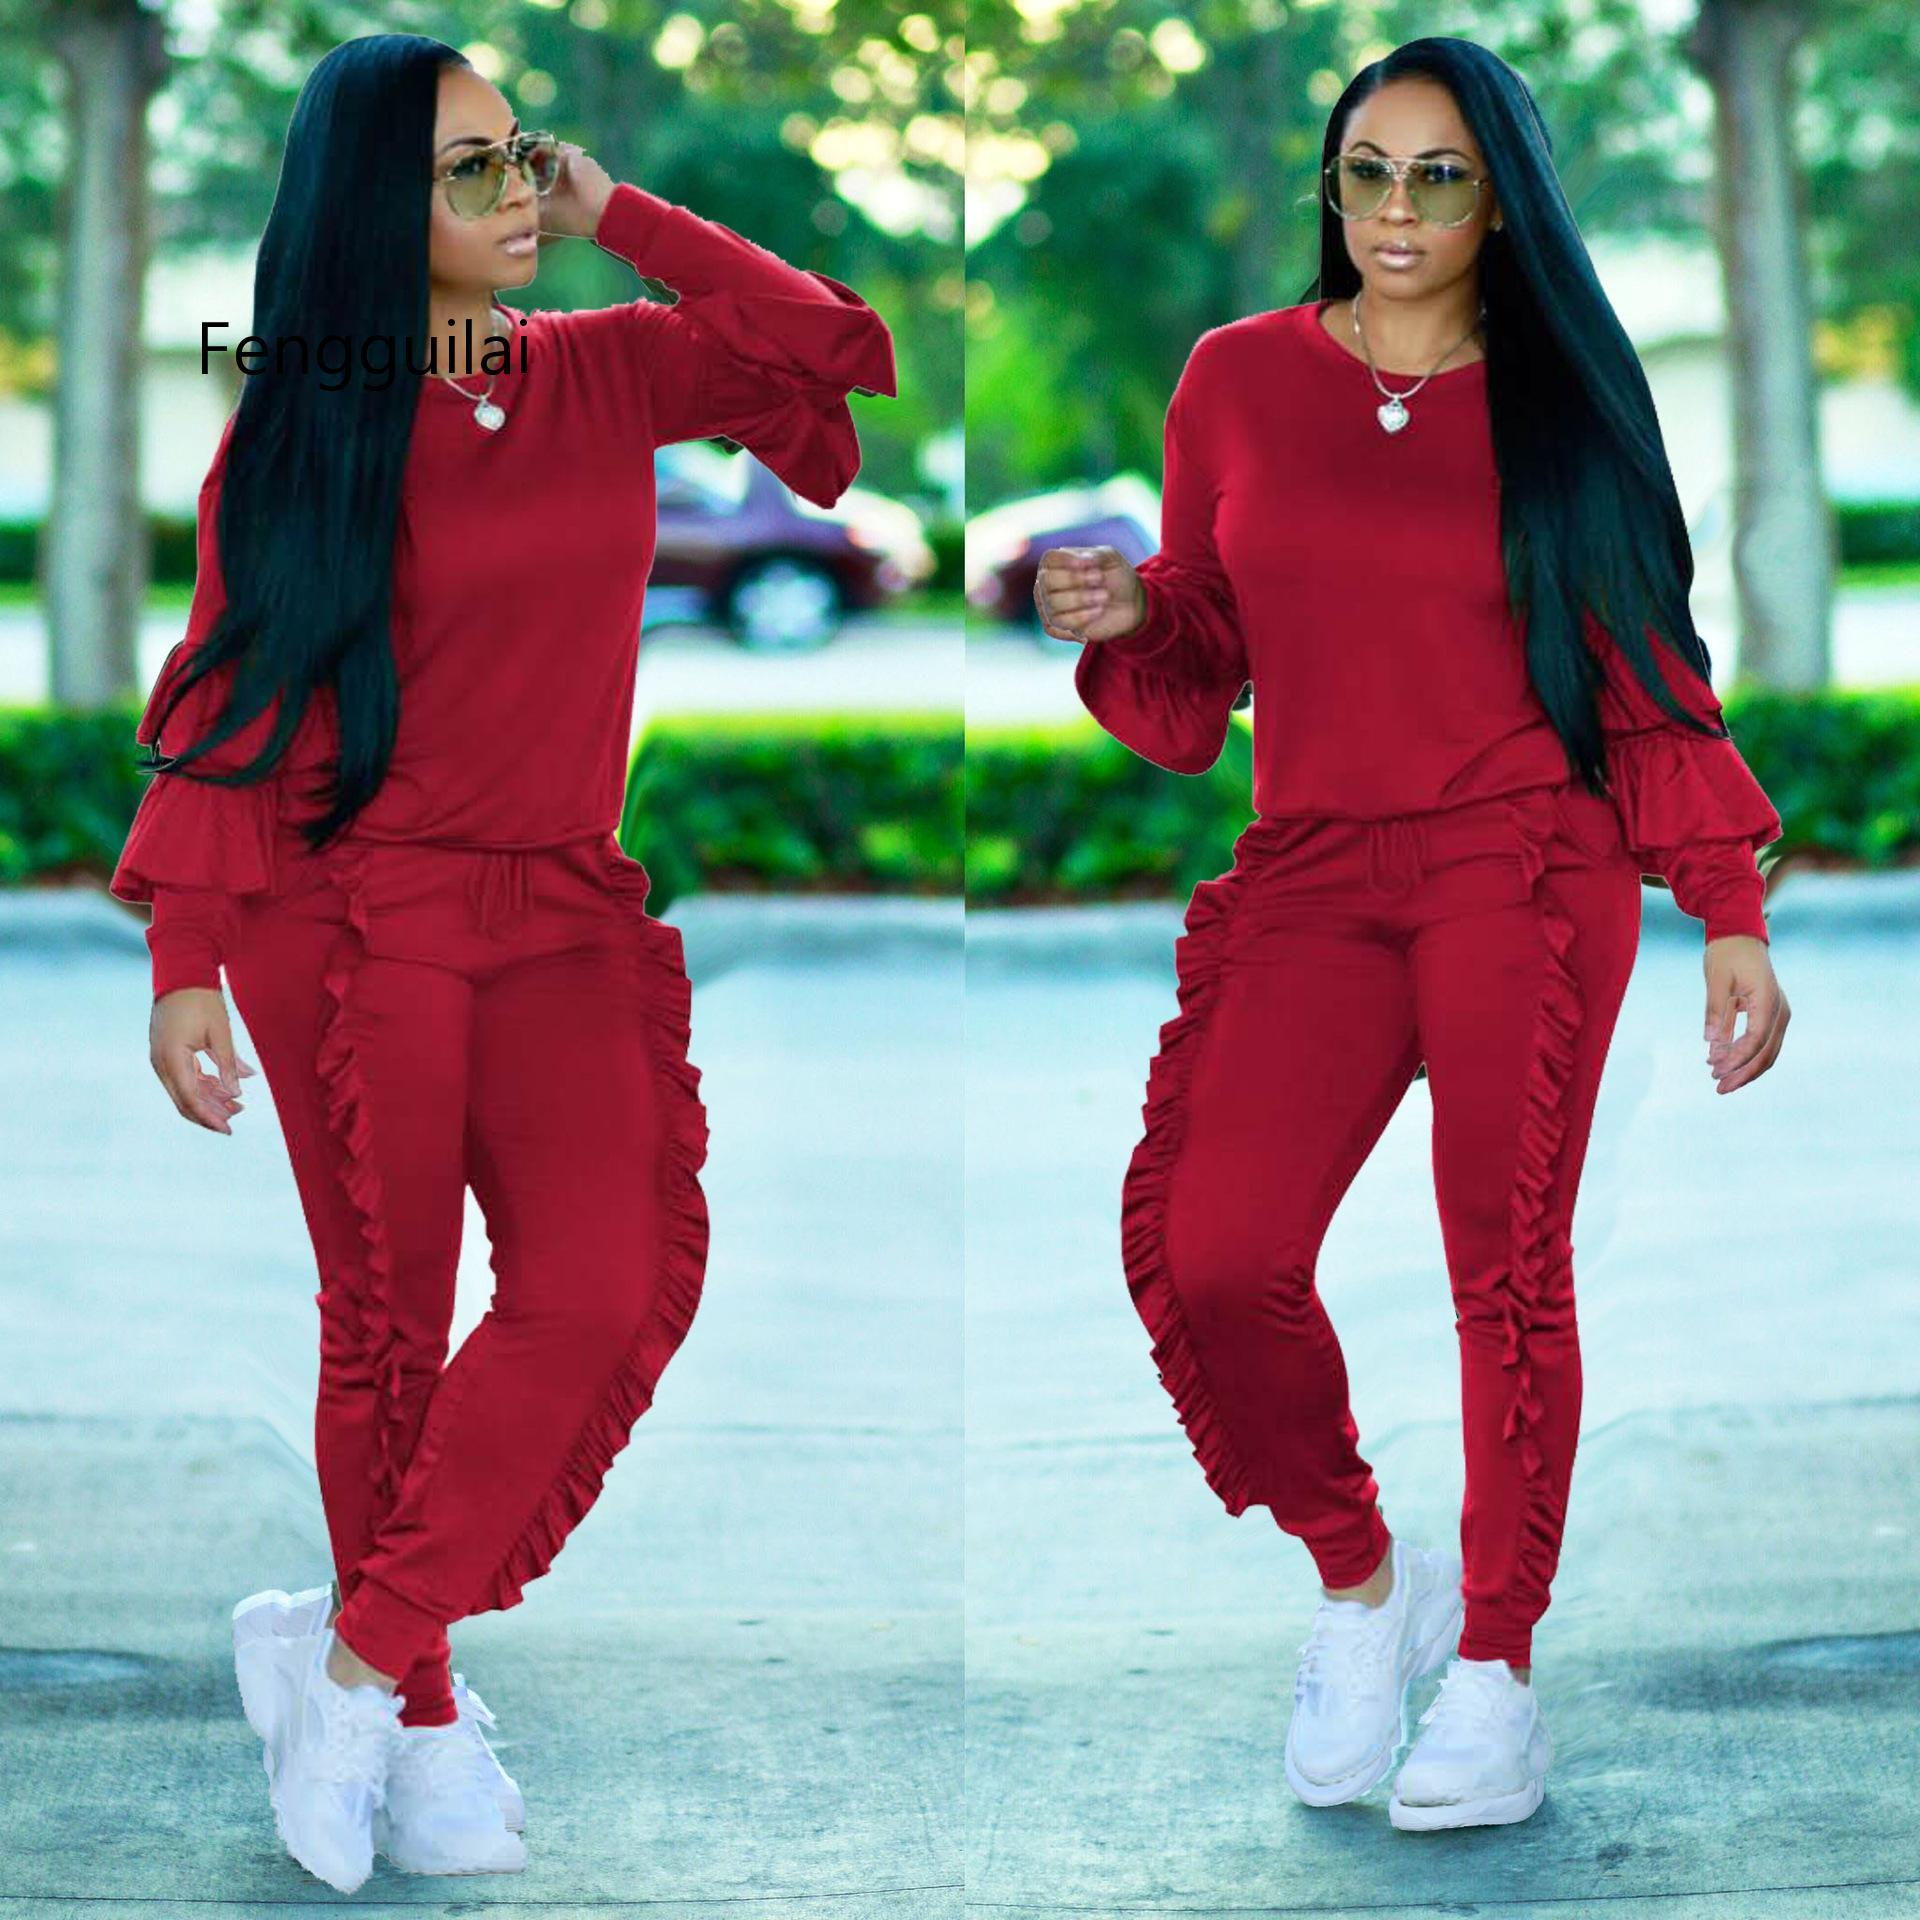 8 colors S-3XL  autumn/winter Women's Set fashion sexy women solid patchwork suits casual nightclub party tracksuit